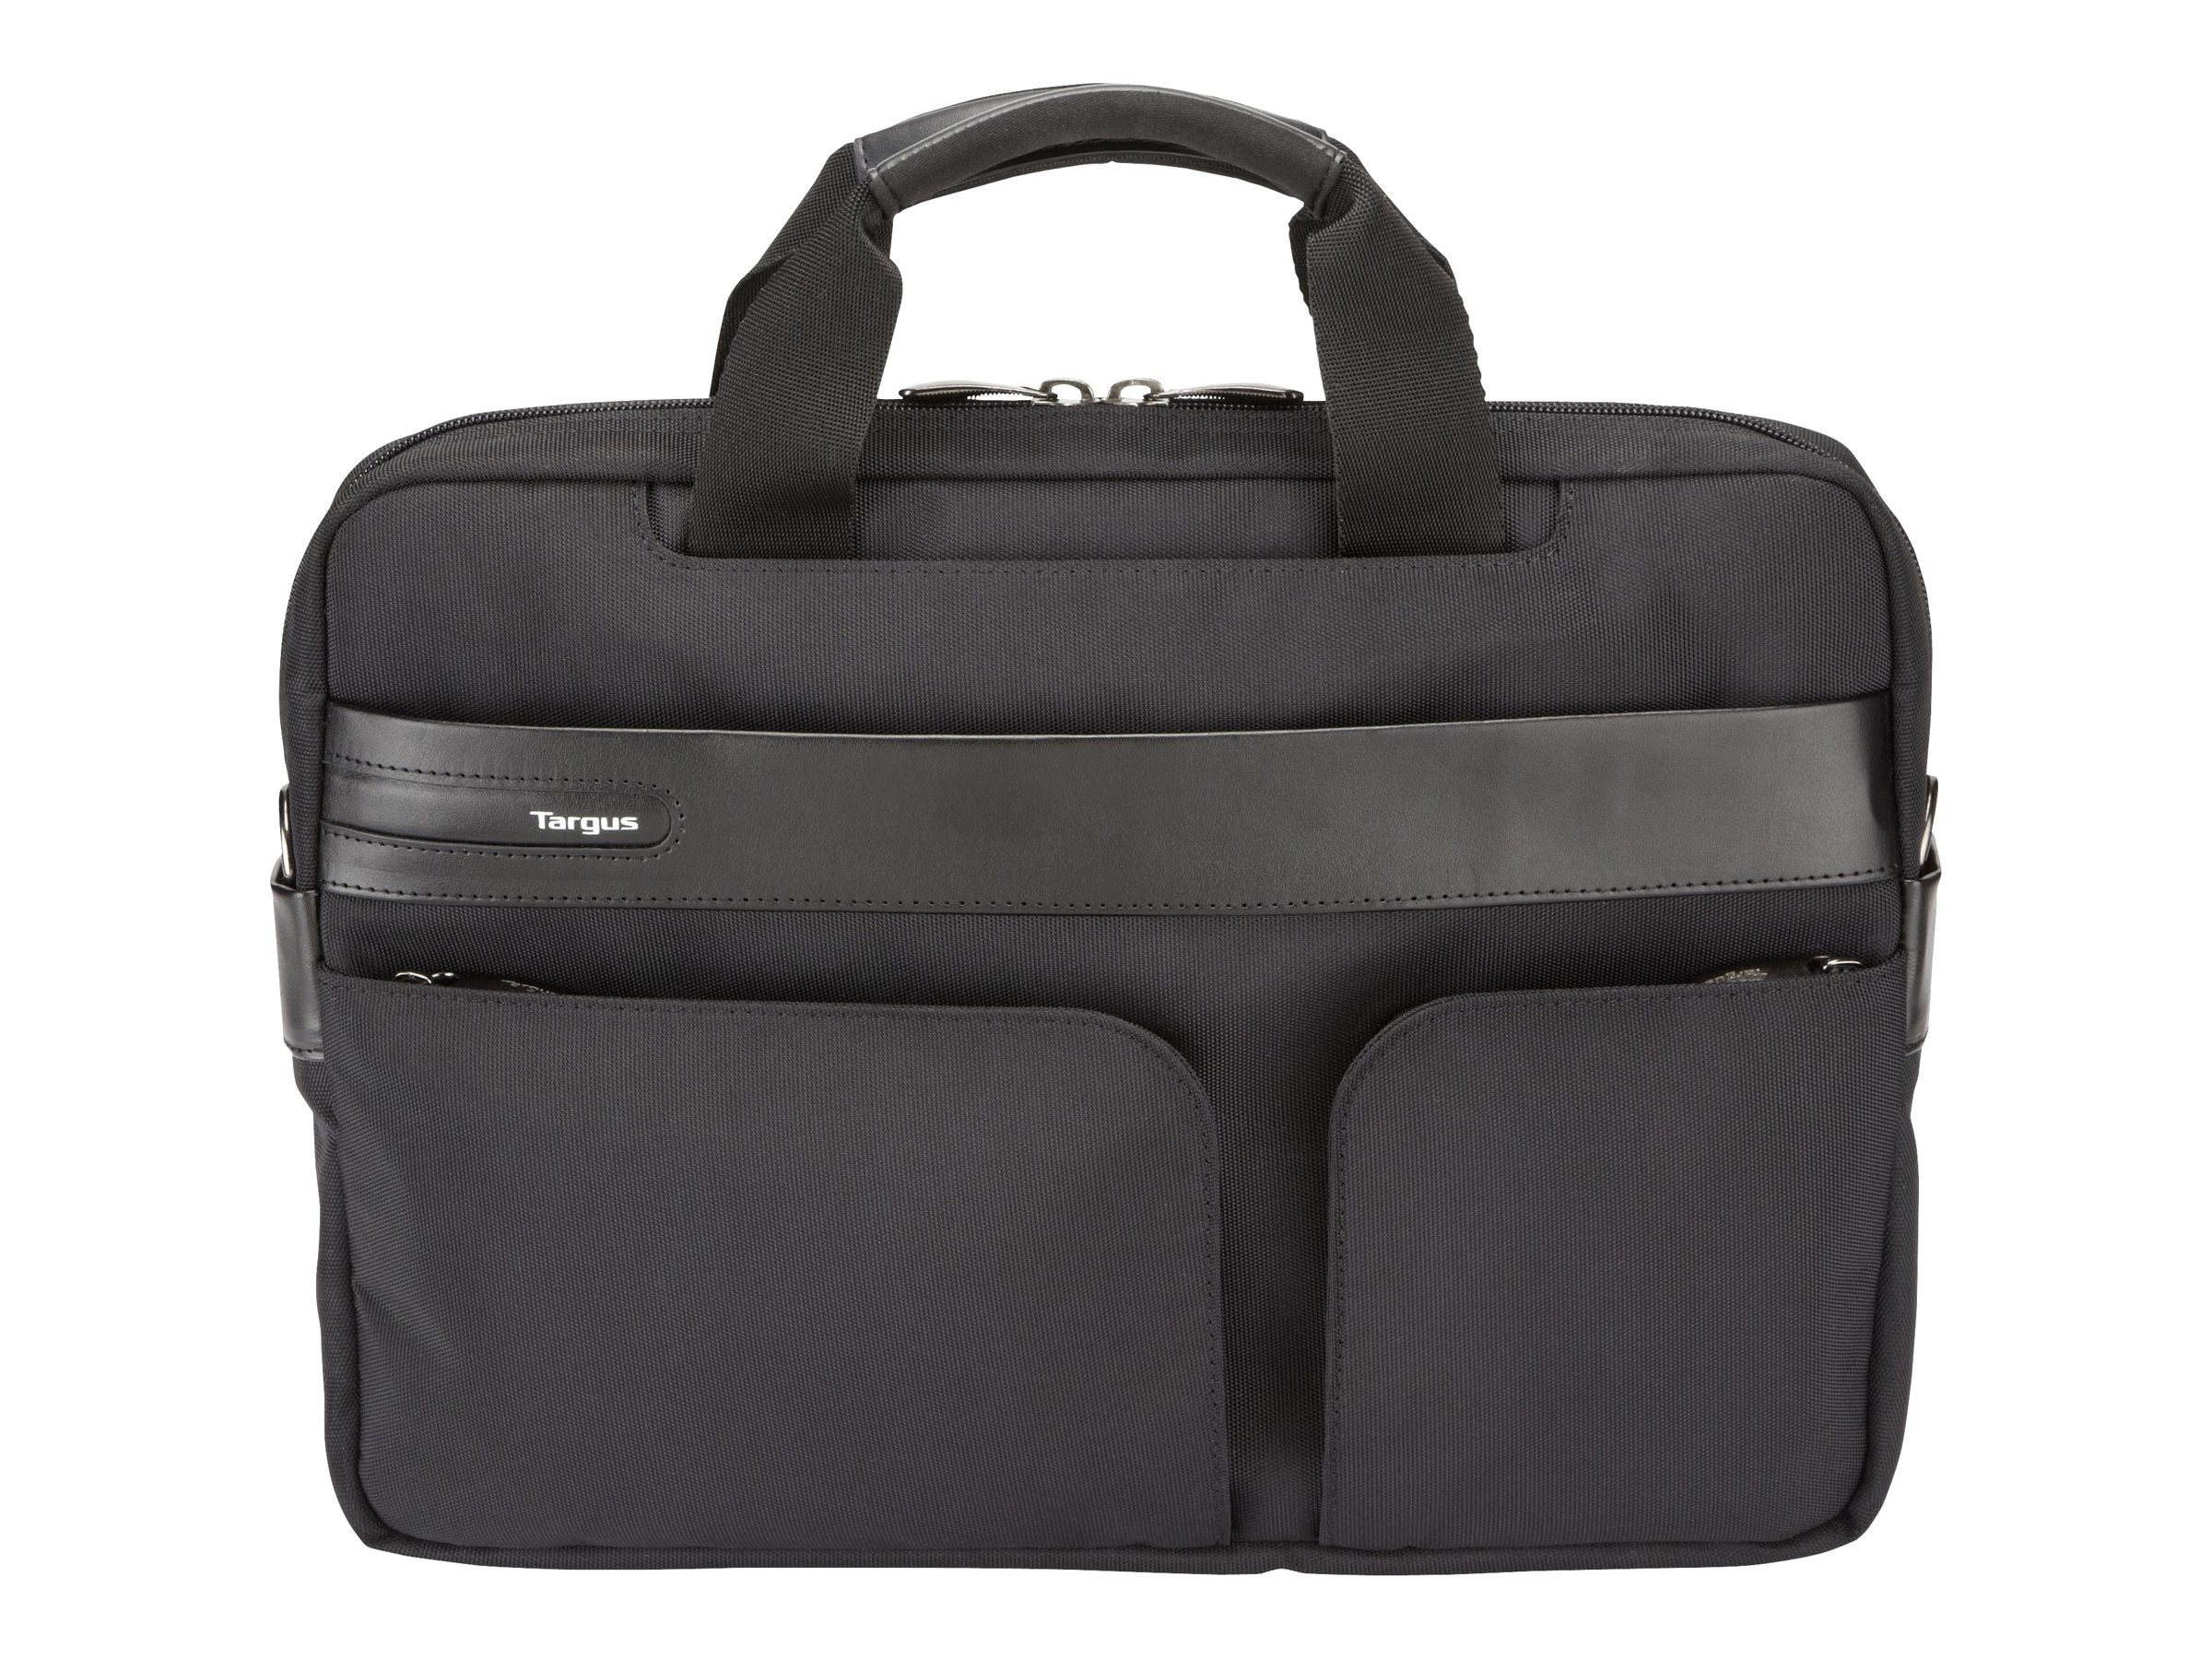 Targus 13 Lomax Ultrathin Case, TBT236US, 15520551, Carrying Cases - Other